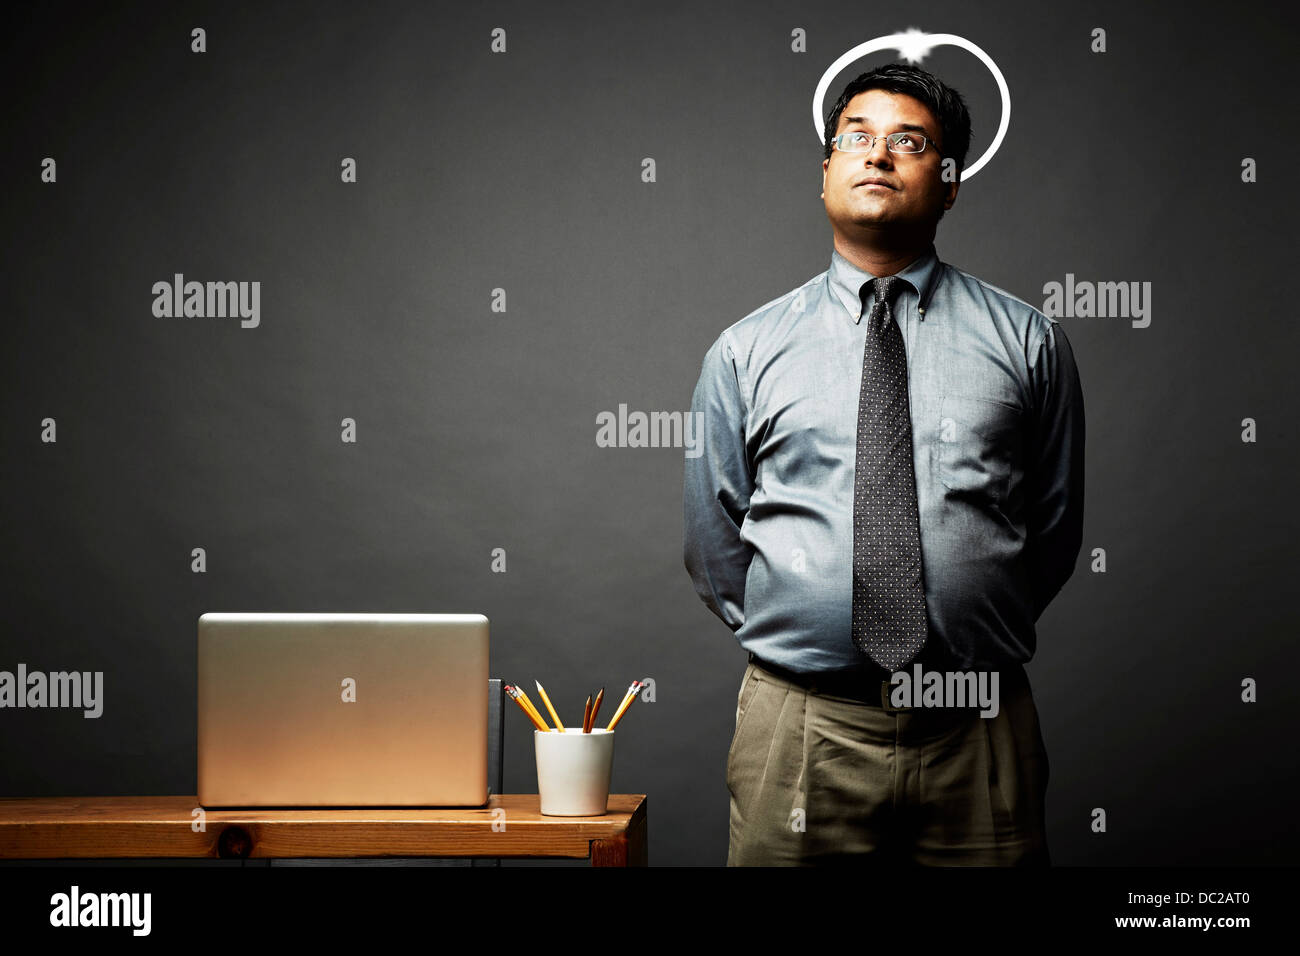 Man with hands behind back looking angelic - Stock Image